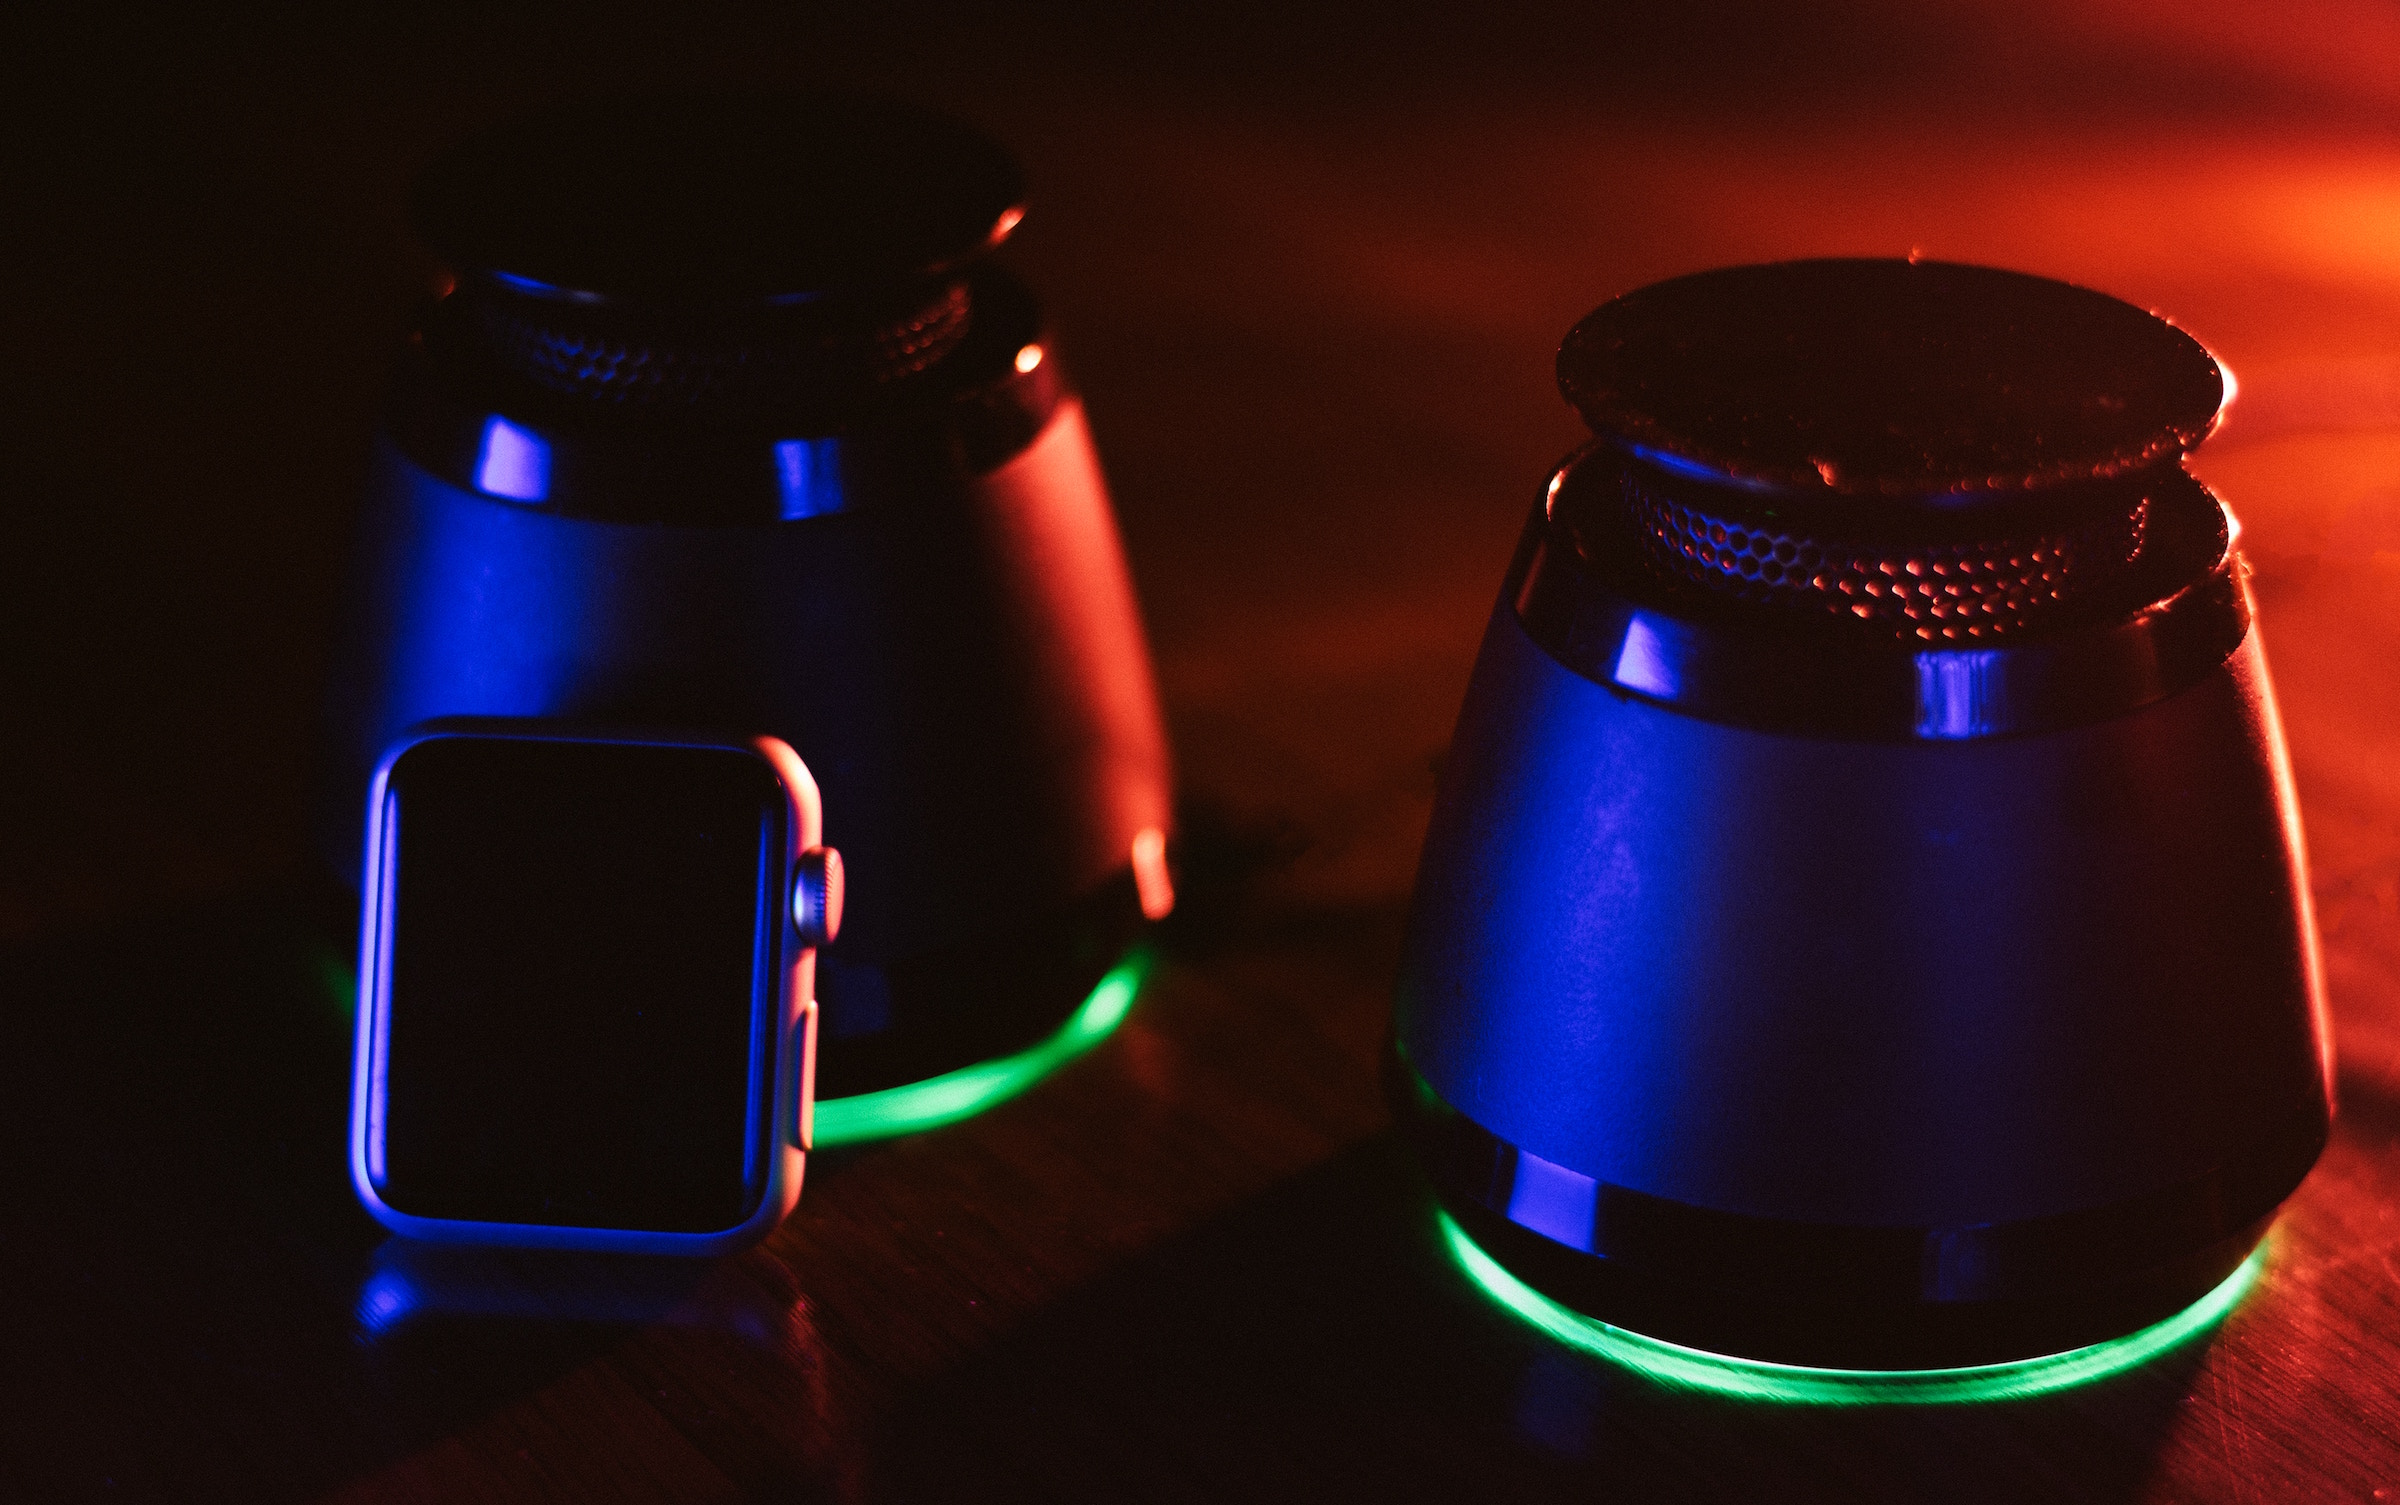 Altavoces Bluetooth con pairing y luces Led de ambiente